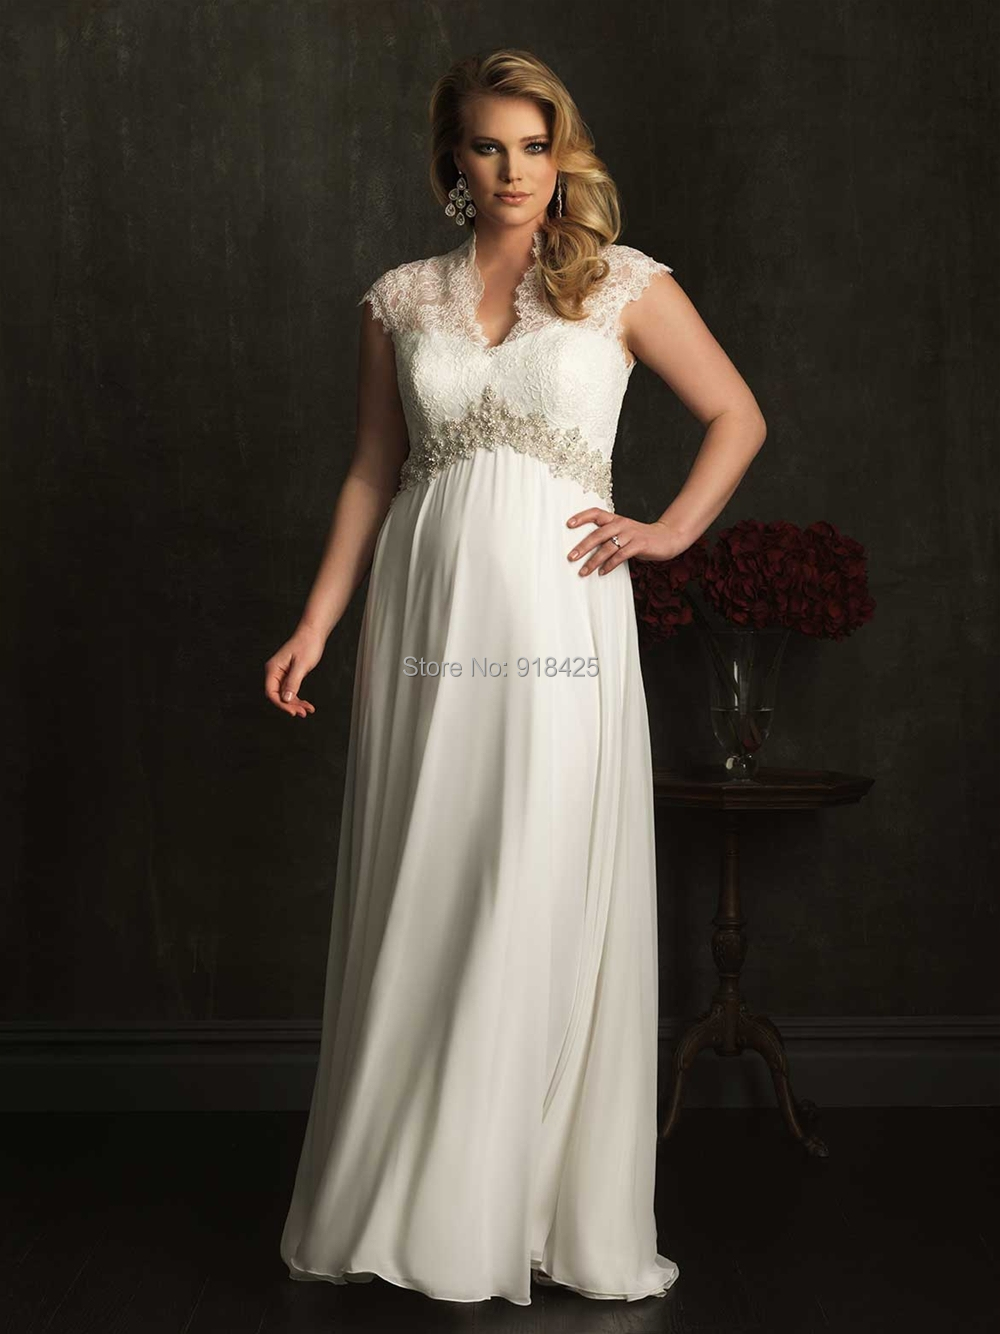 Lace cap sleeve chiffon empire waist plus size maternity for Plus size wedding dresses with color and sleeves